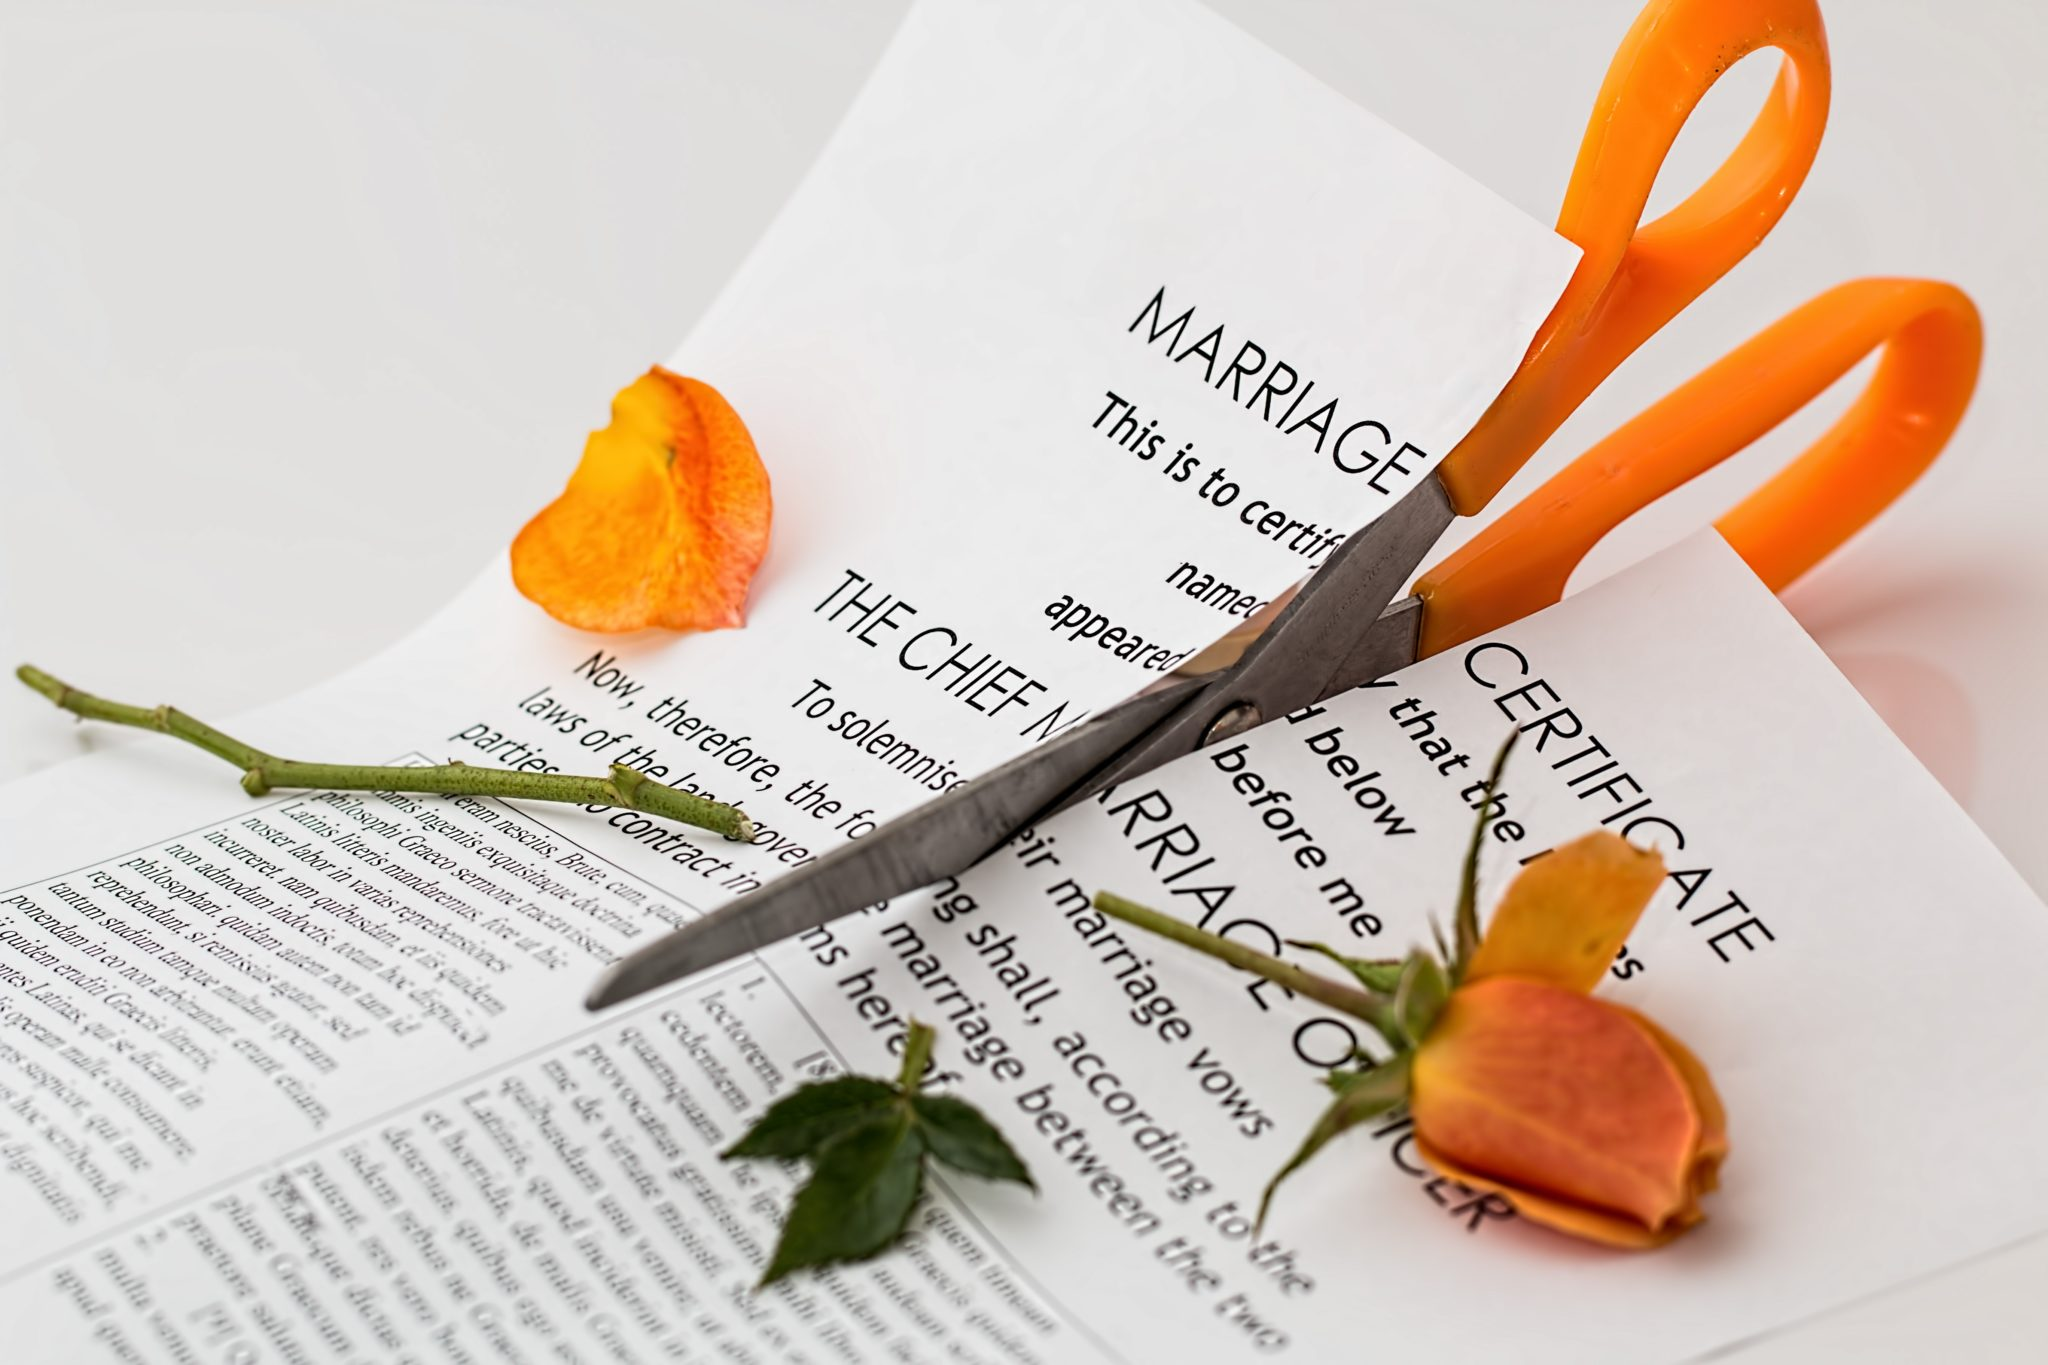 Divorce (Matrimony) in Astrology